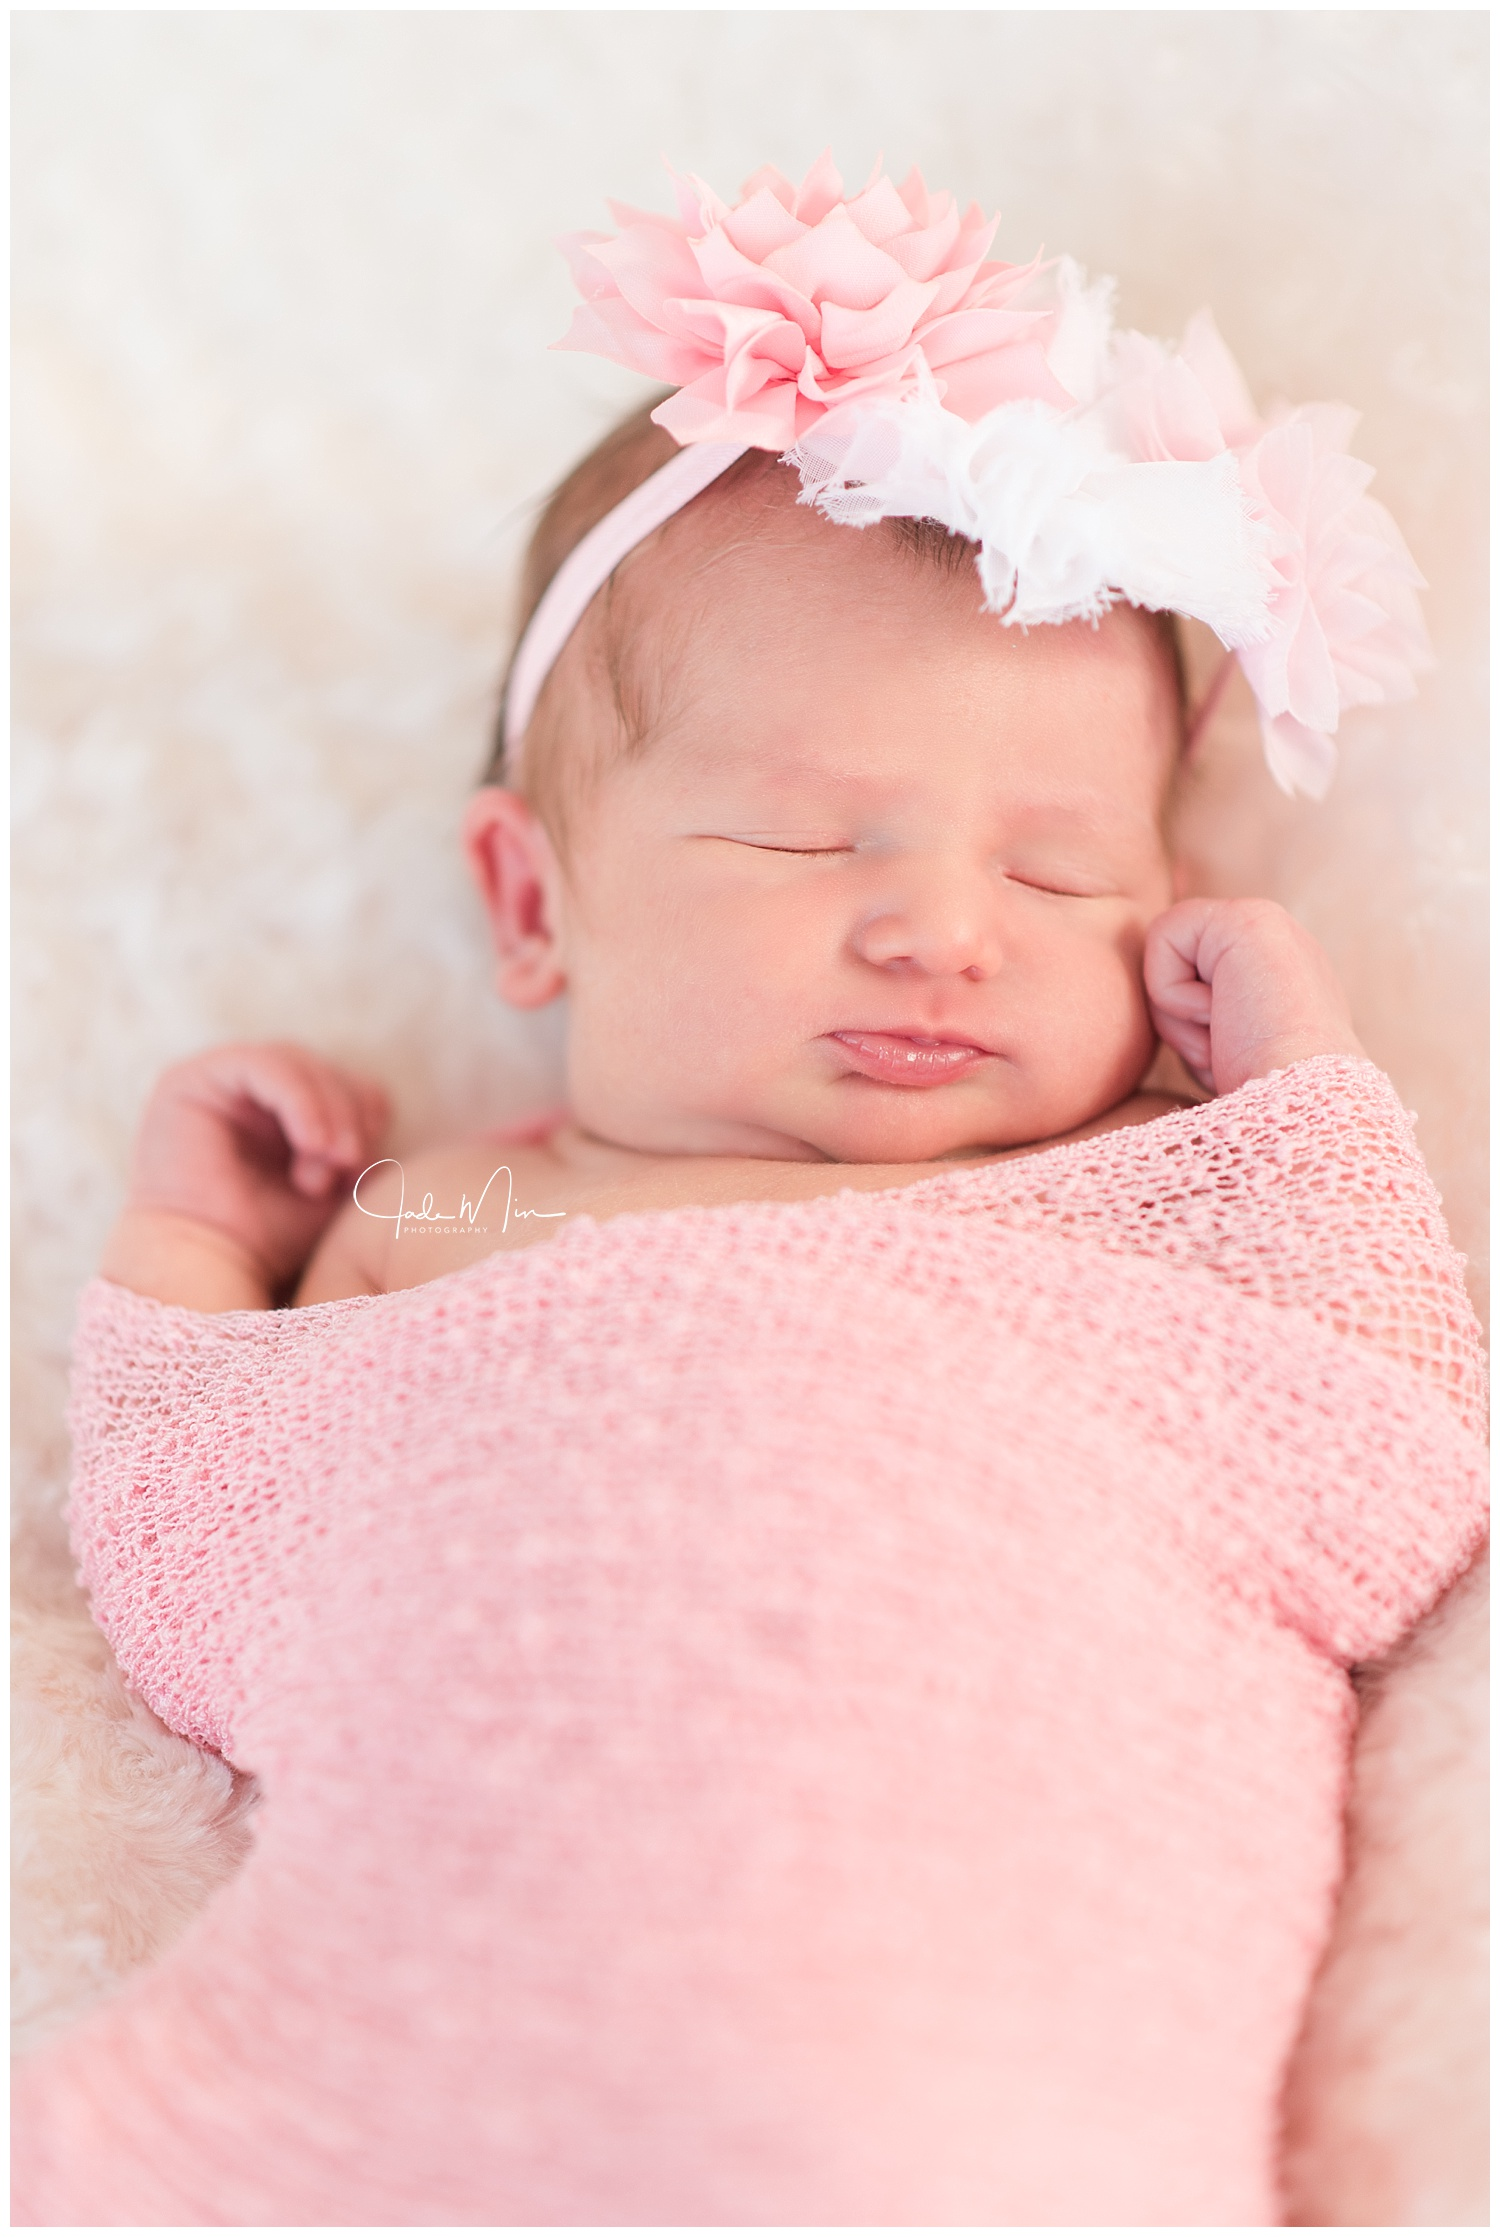 Baby Amelia is pretty in pink for her newborn session at the Florez family home in Scottsdale, Arizona.